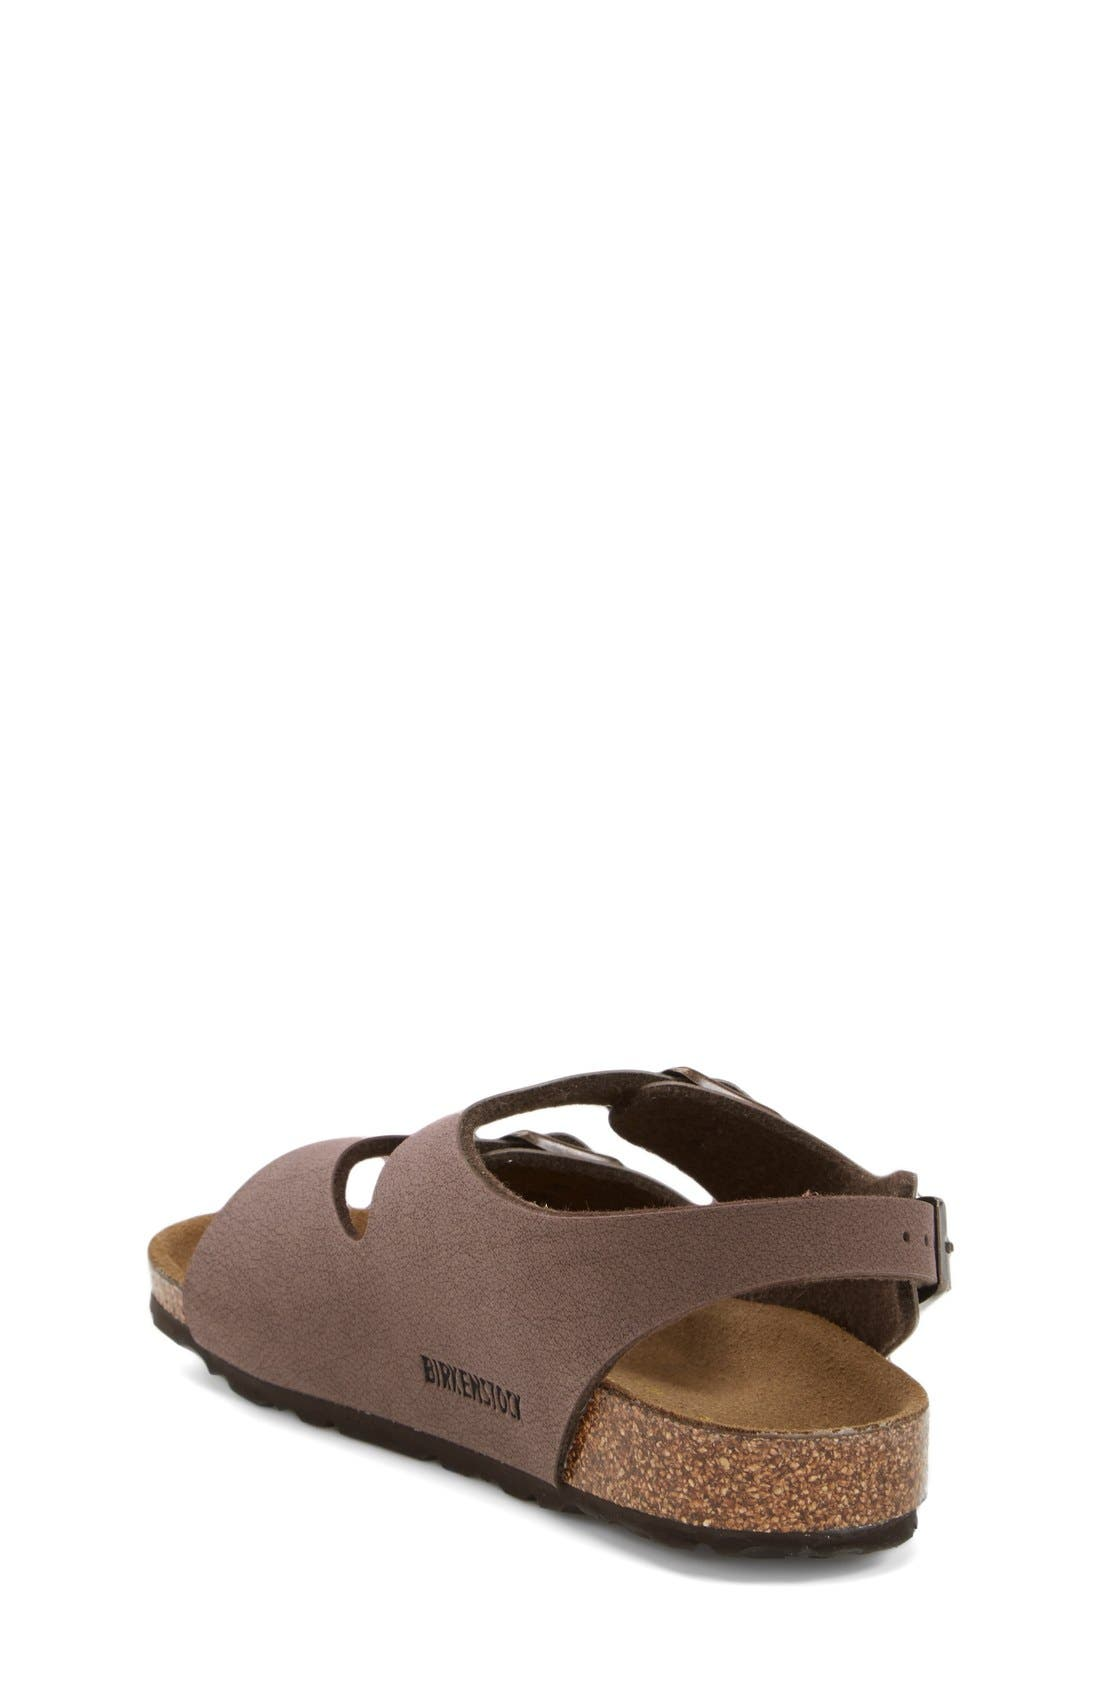 Alternate Image 2  - Birkenstock 'Roma' Sandal (Walker, Toddler & Little Kid)